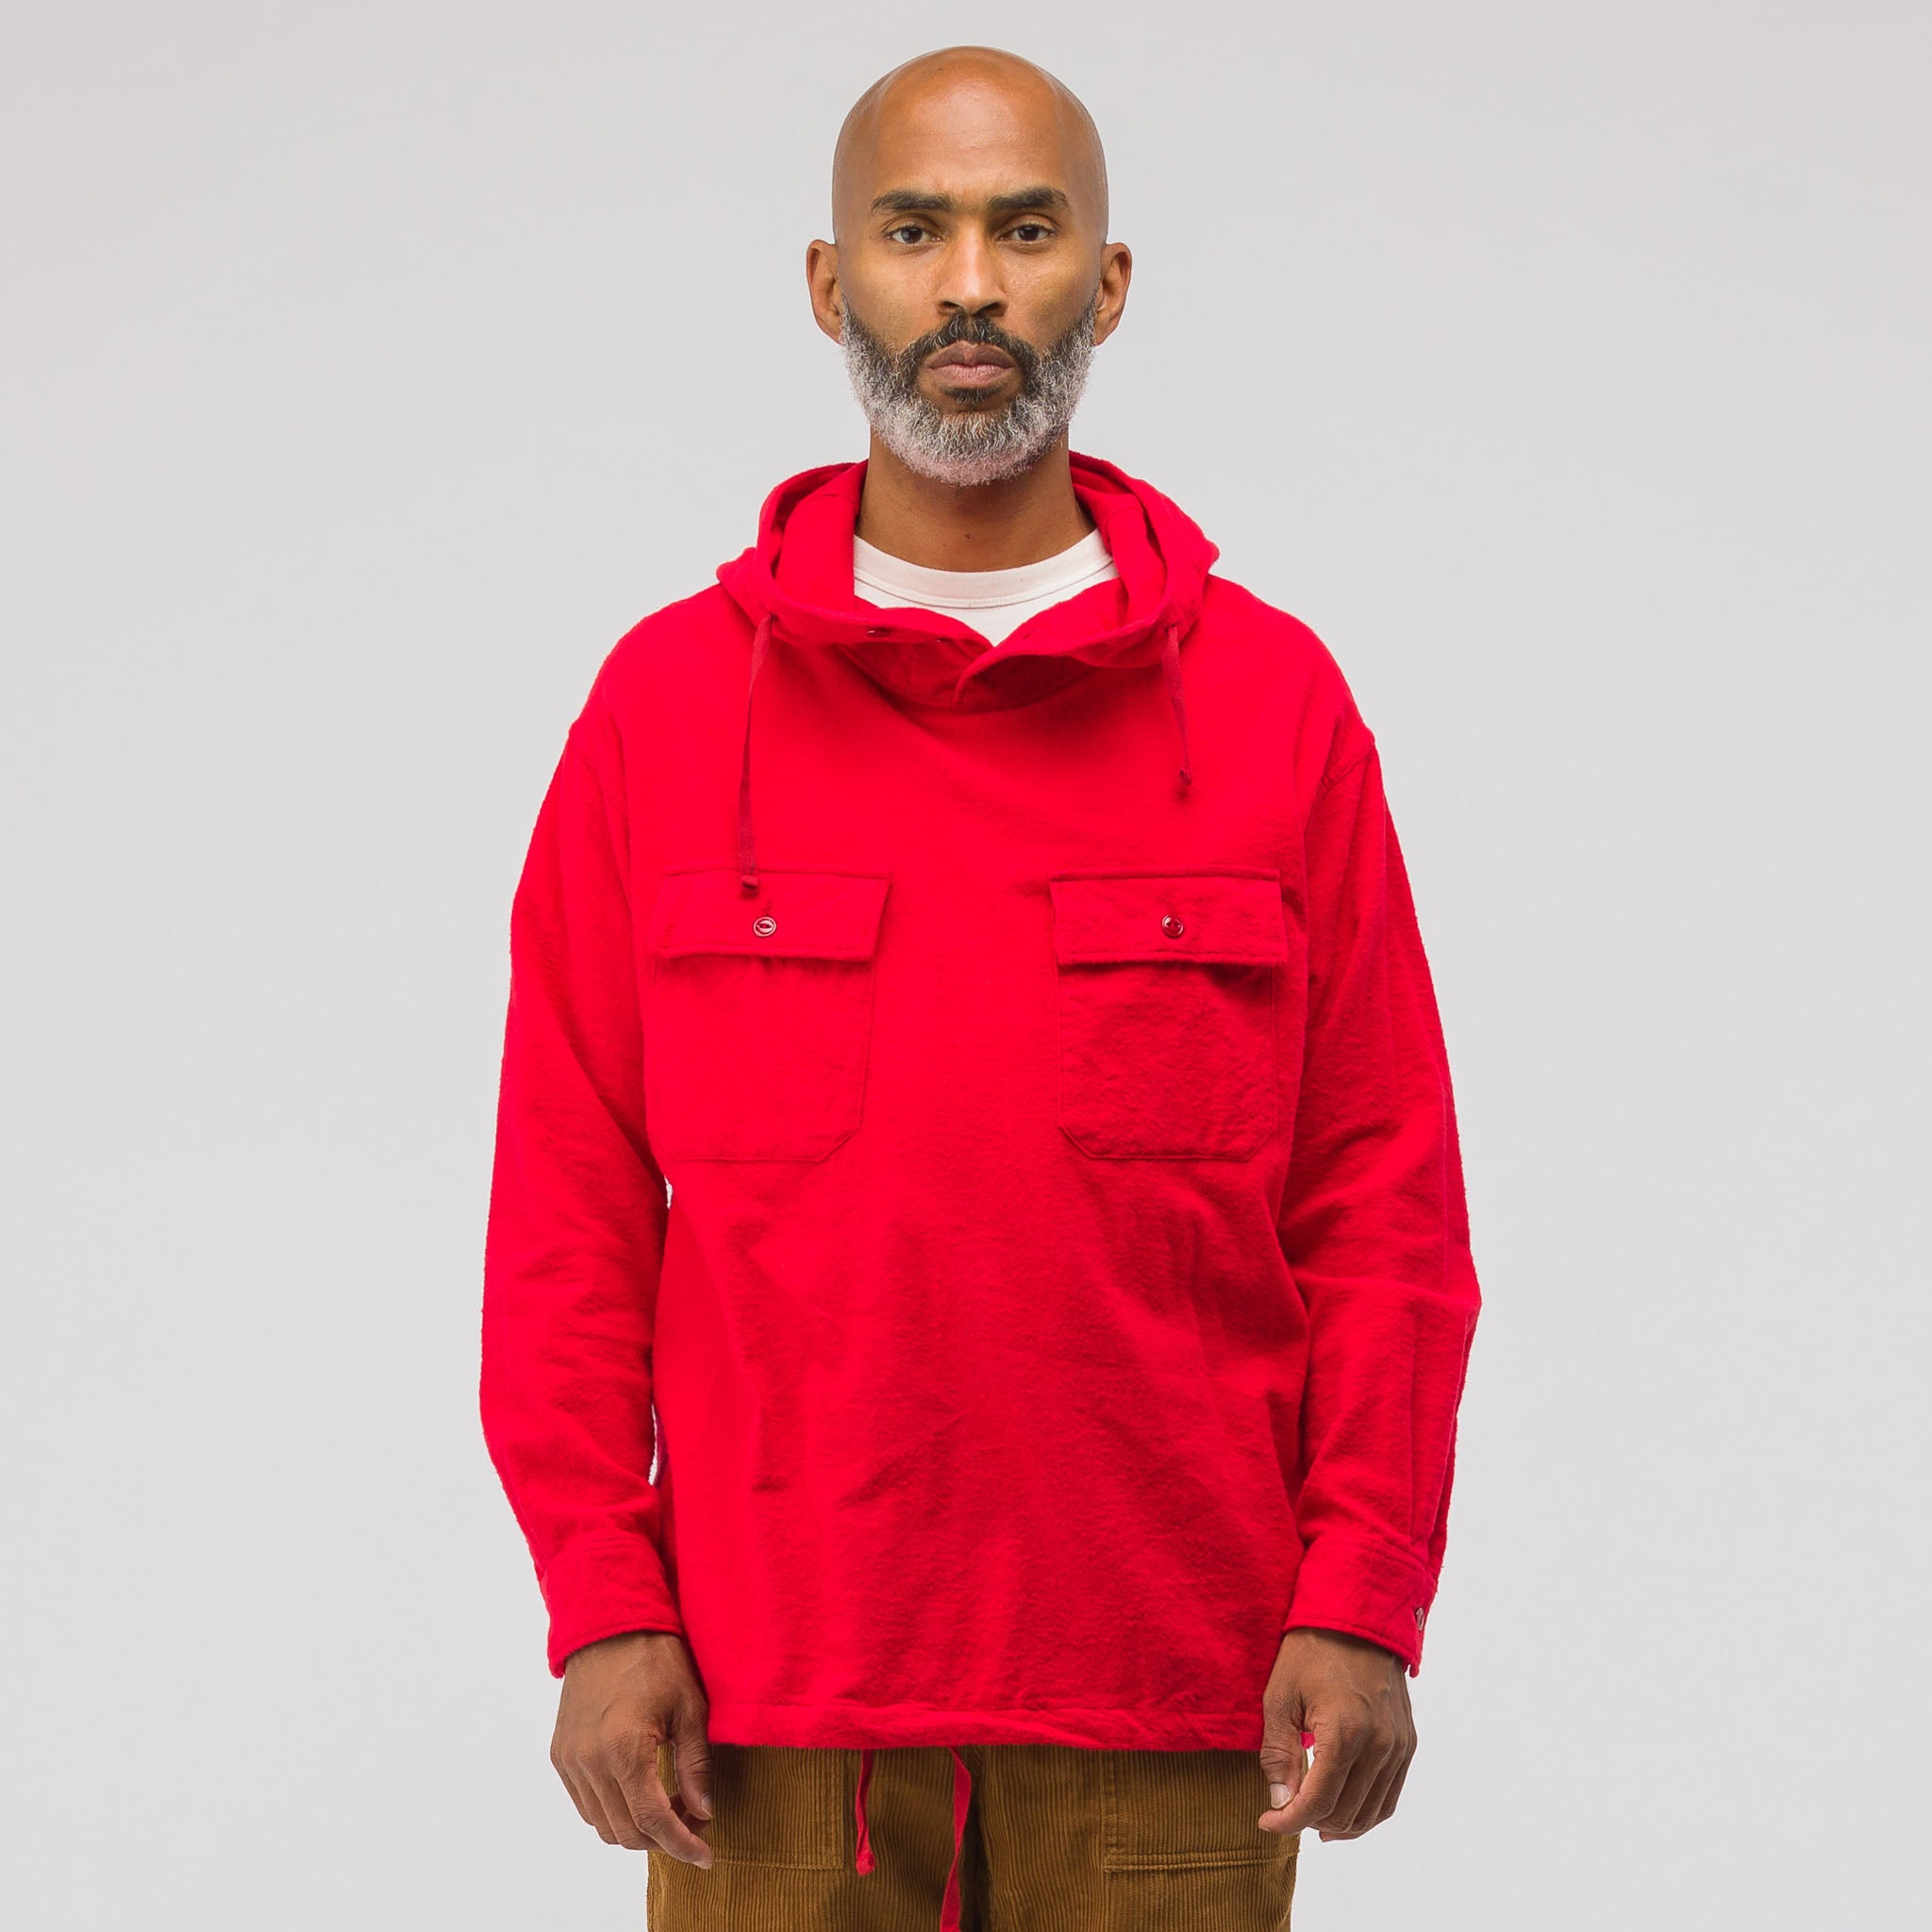 Cagoule Shirt in Red